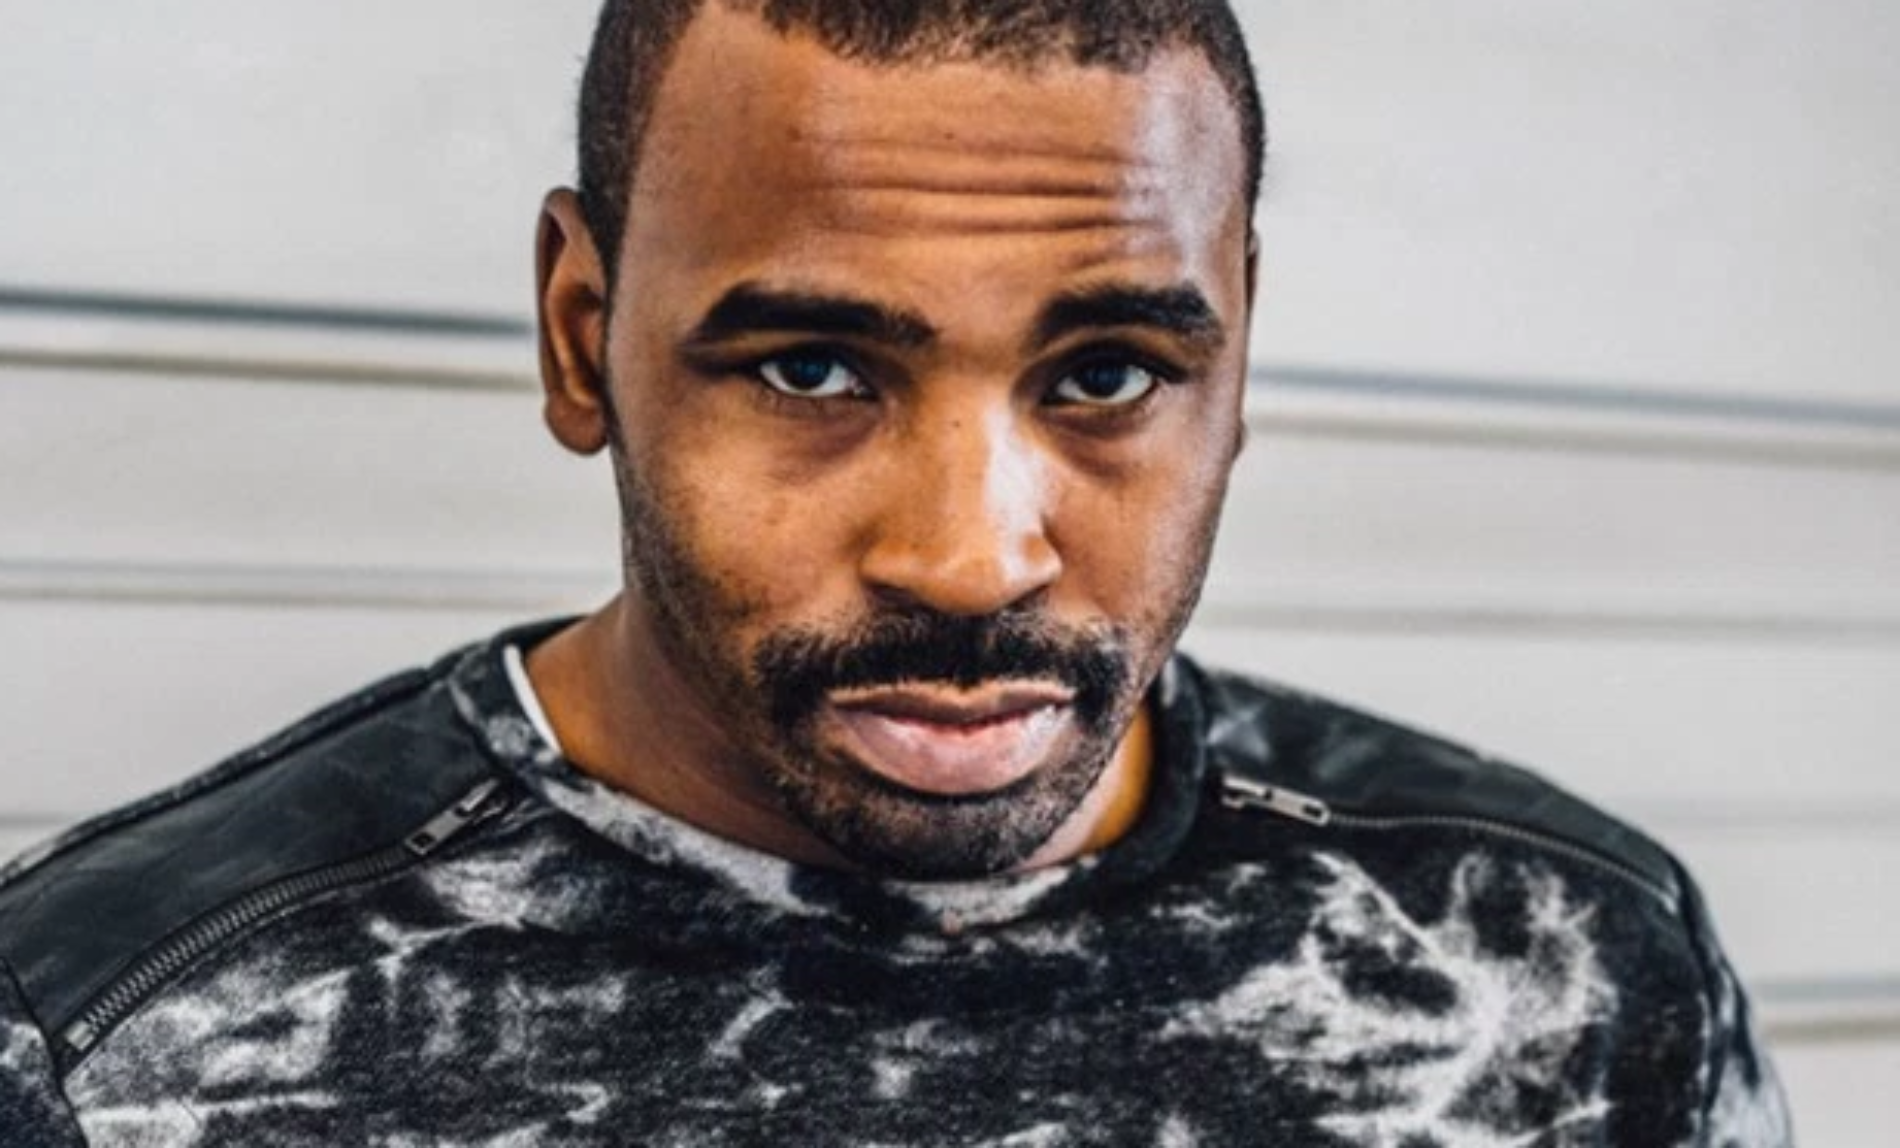 Yusaf Mack Says He Wants A Relationship With A Trans Person